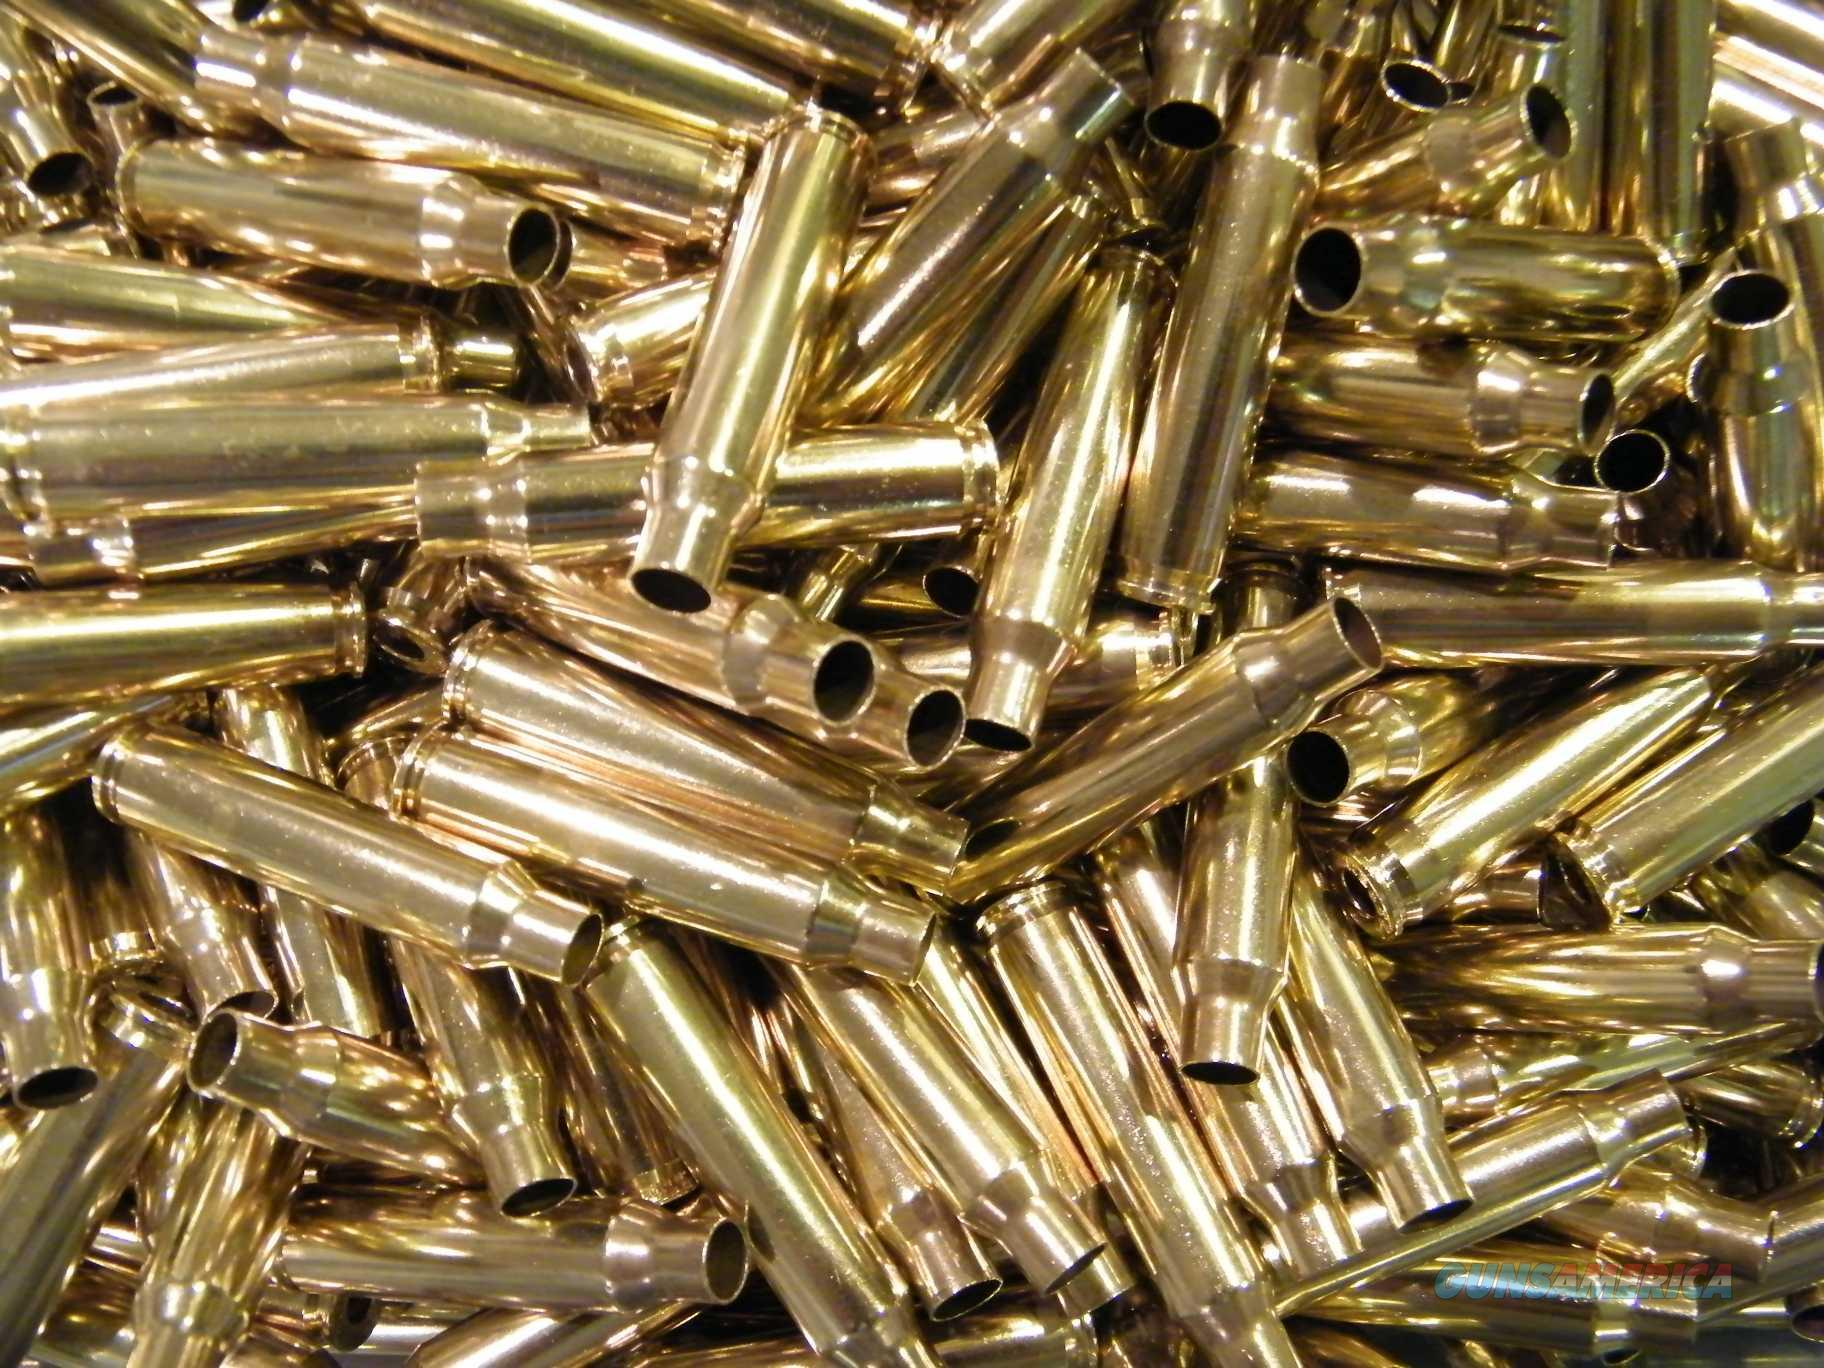 223 5.56 Brass Clean SWAGED PRIMER POCKETS - 100   Non-Guns > Reloading > Components > Brass